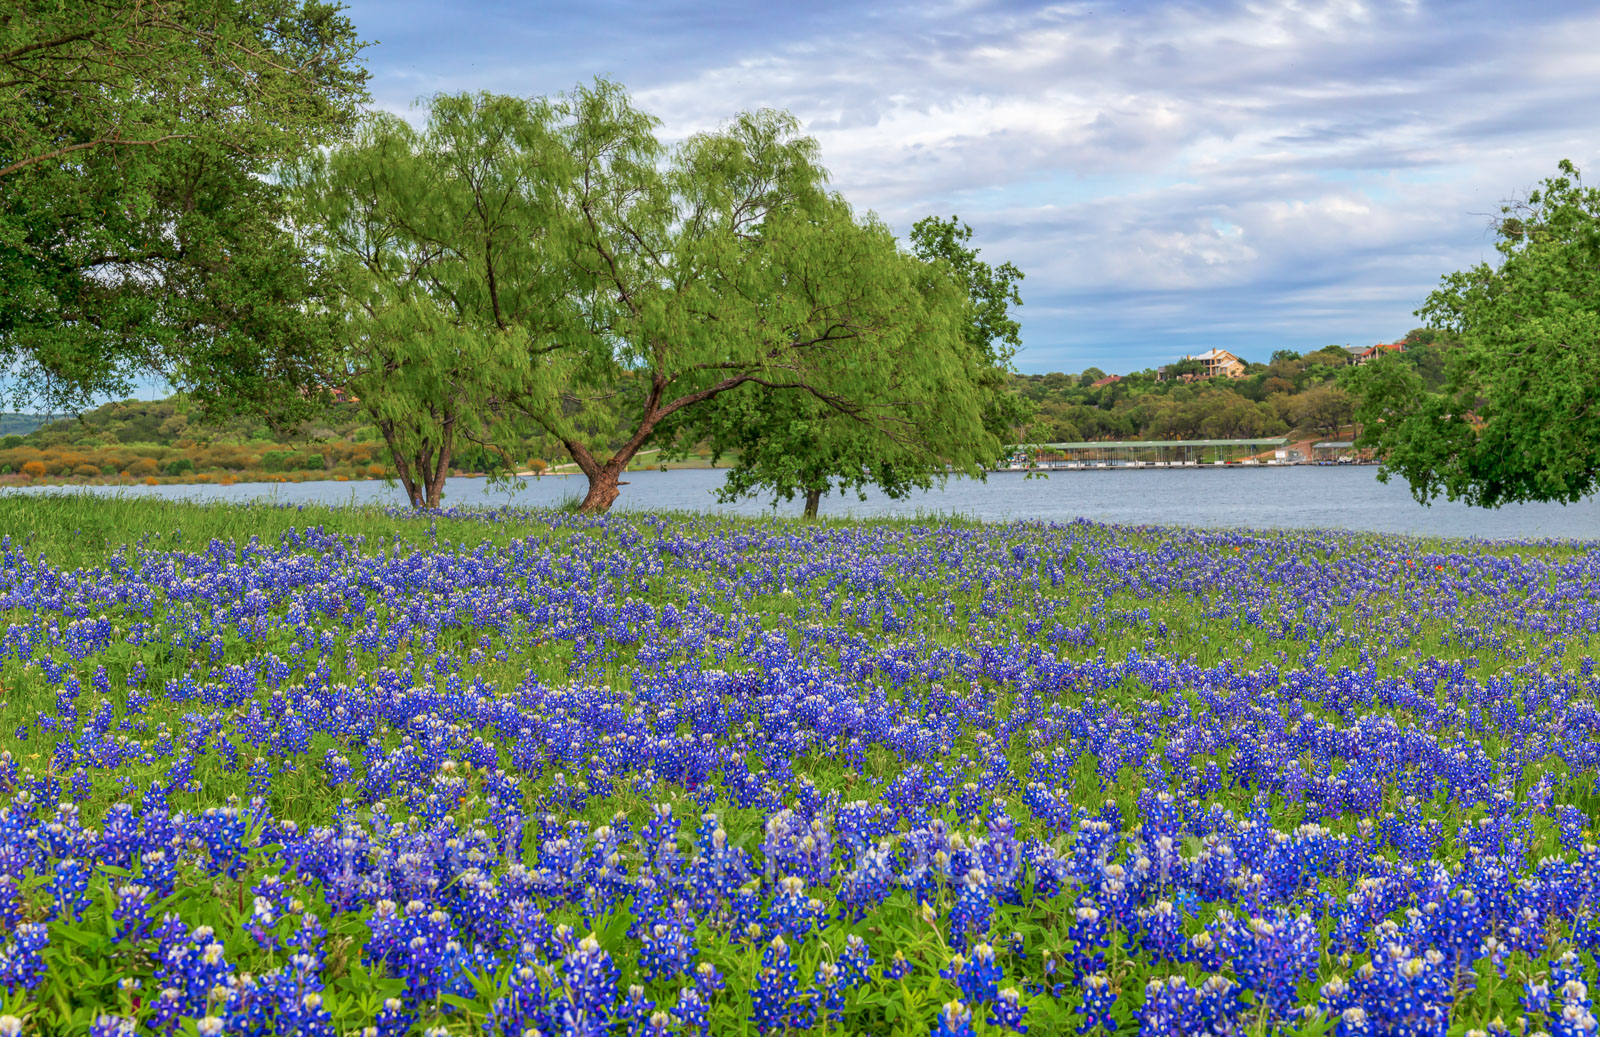 Bluebonnets, river, texas hill country, hill country, spring, wildflowers, mesquite, tree, green, water, Texas bluebonnet, lupine, state flower, us, american, springtime, flowers, Texas bluebonnet lan, photo